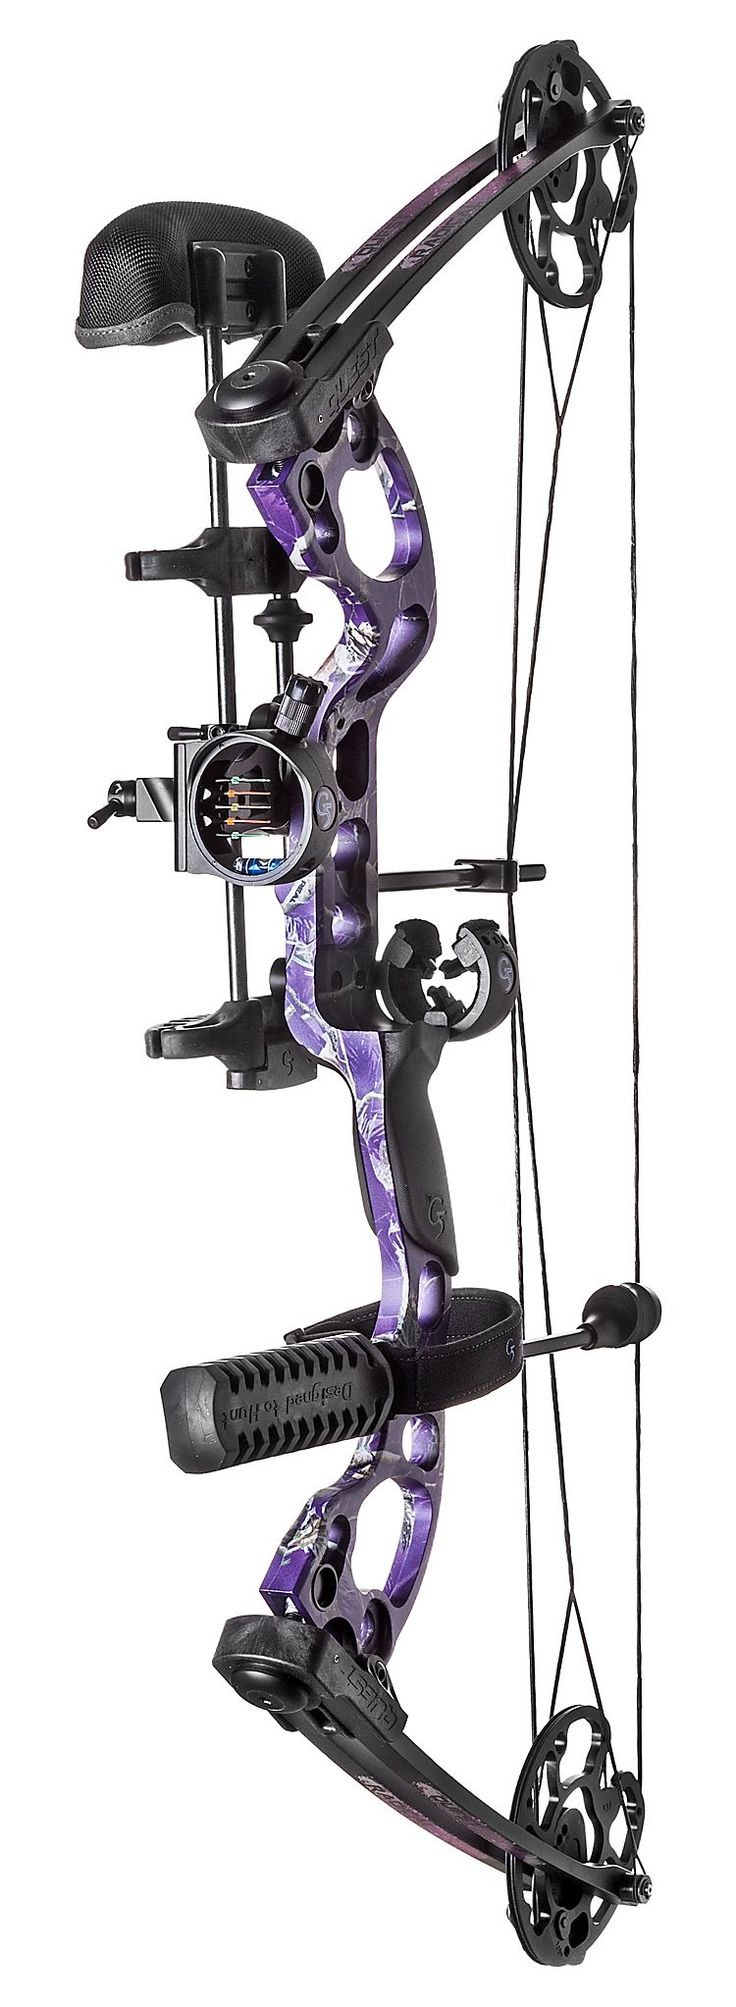 Archi (9)Purple! Quest by G5® Radical Compound Bow Package | Bass Pro Shops